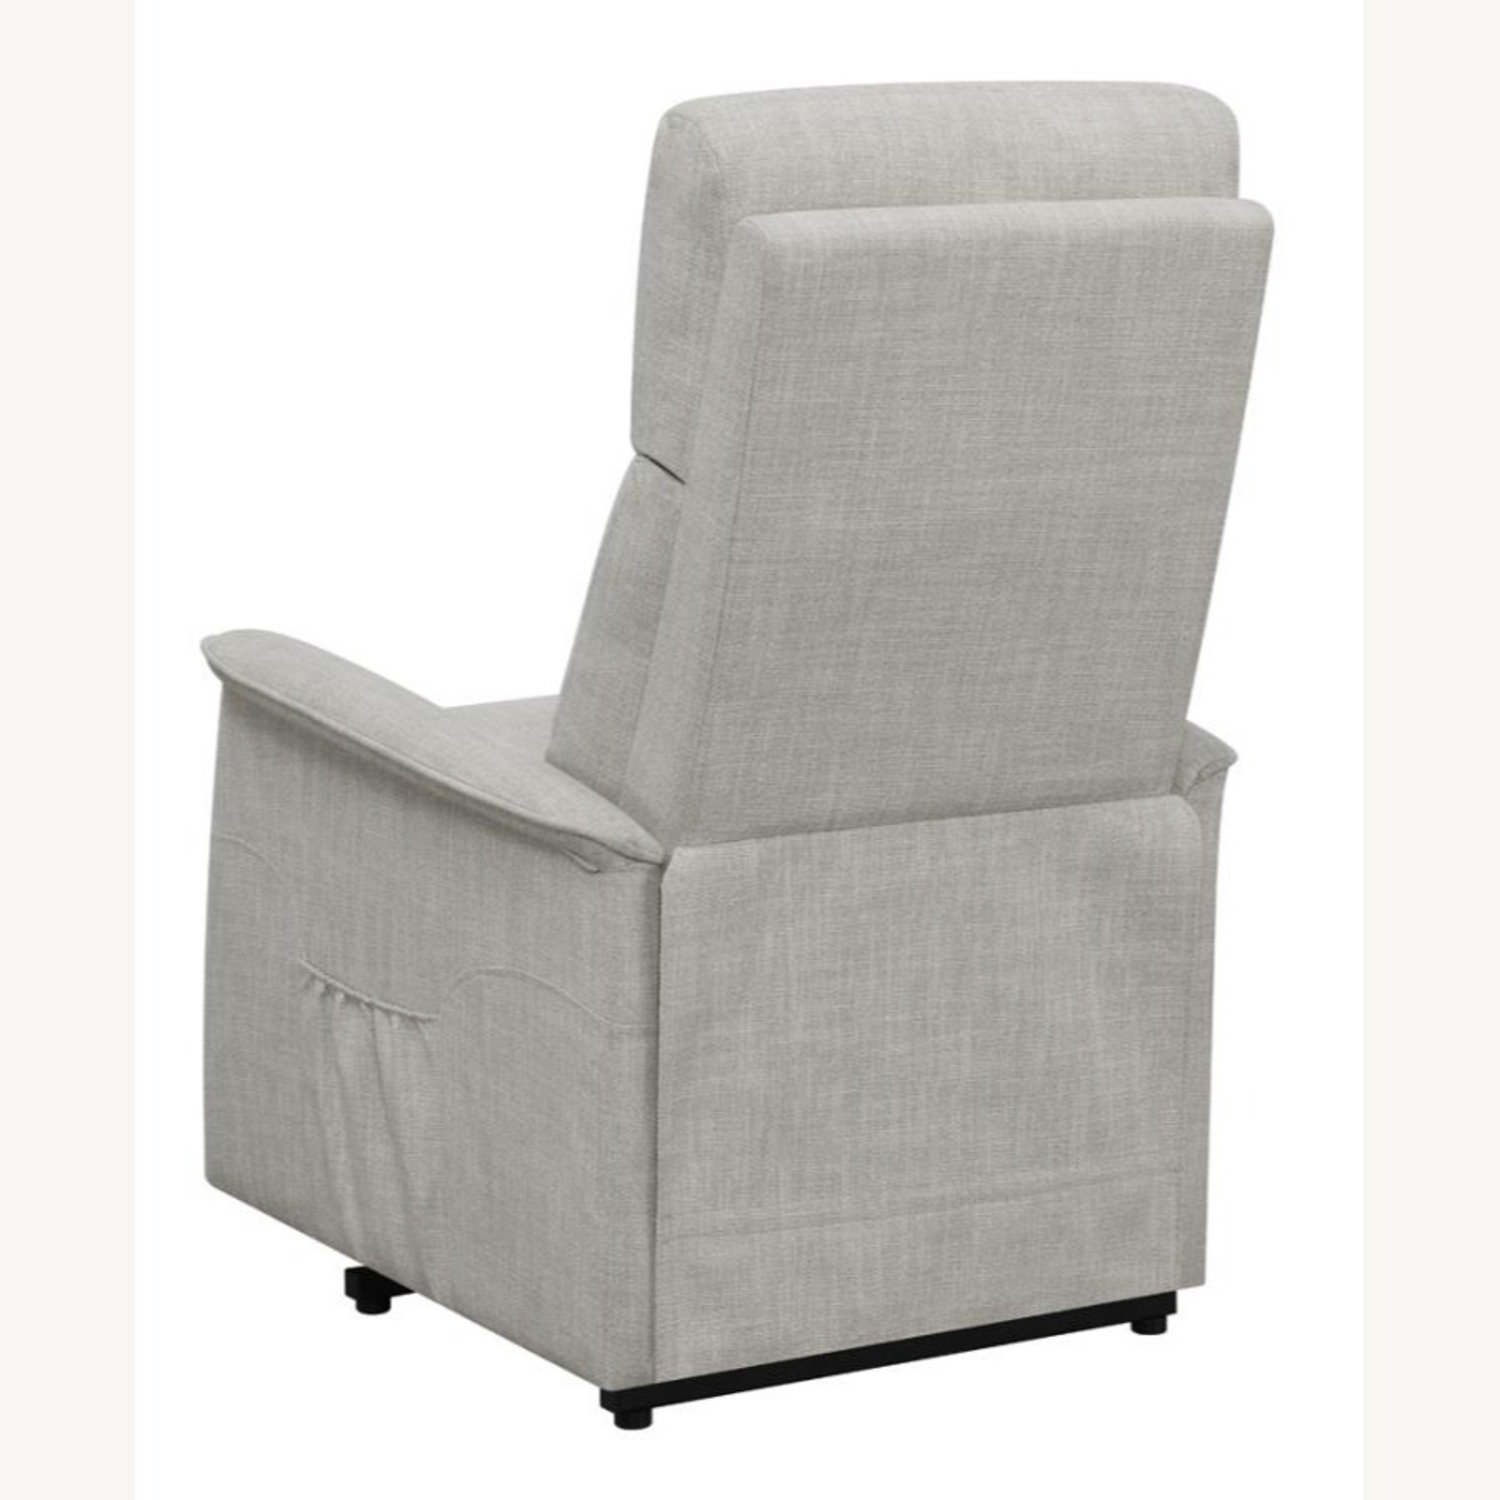 Power Lift Recliner Tufted In Beige Fabric - image-6